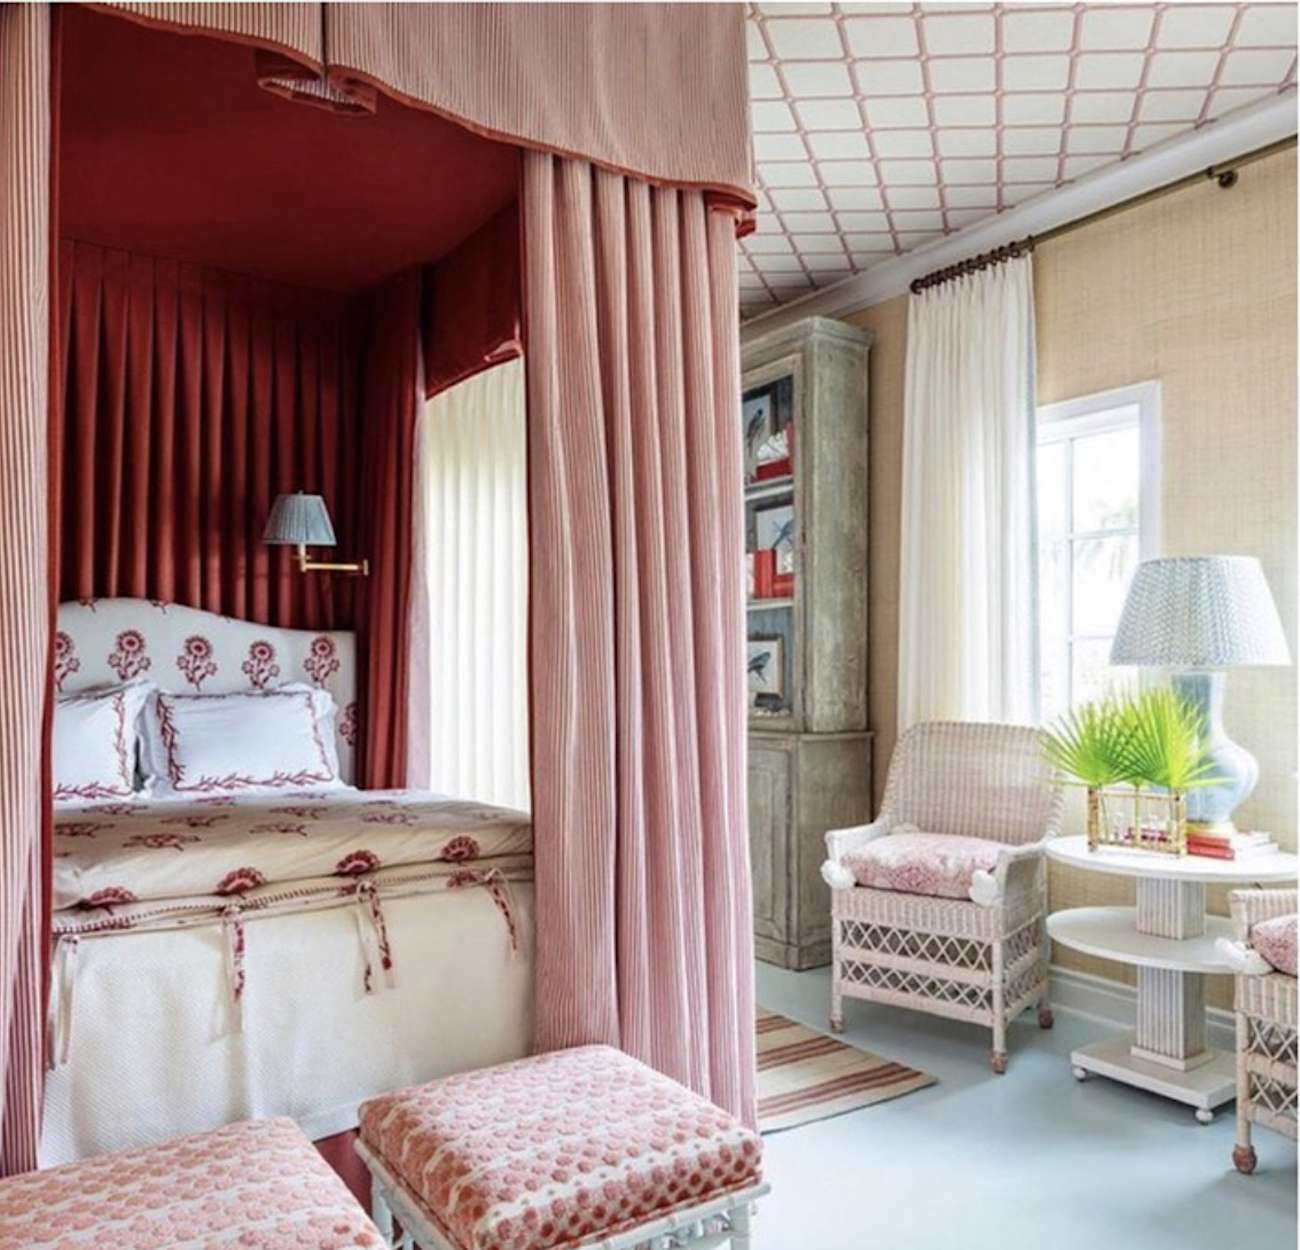 bedroom with red and pink colors against cream walls and wicker furniture